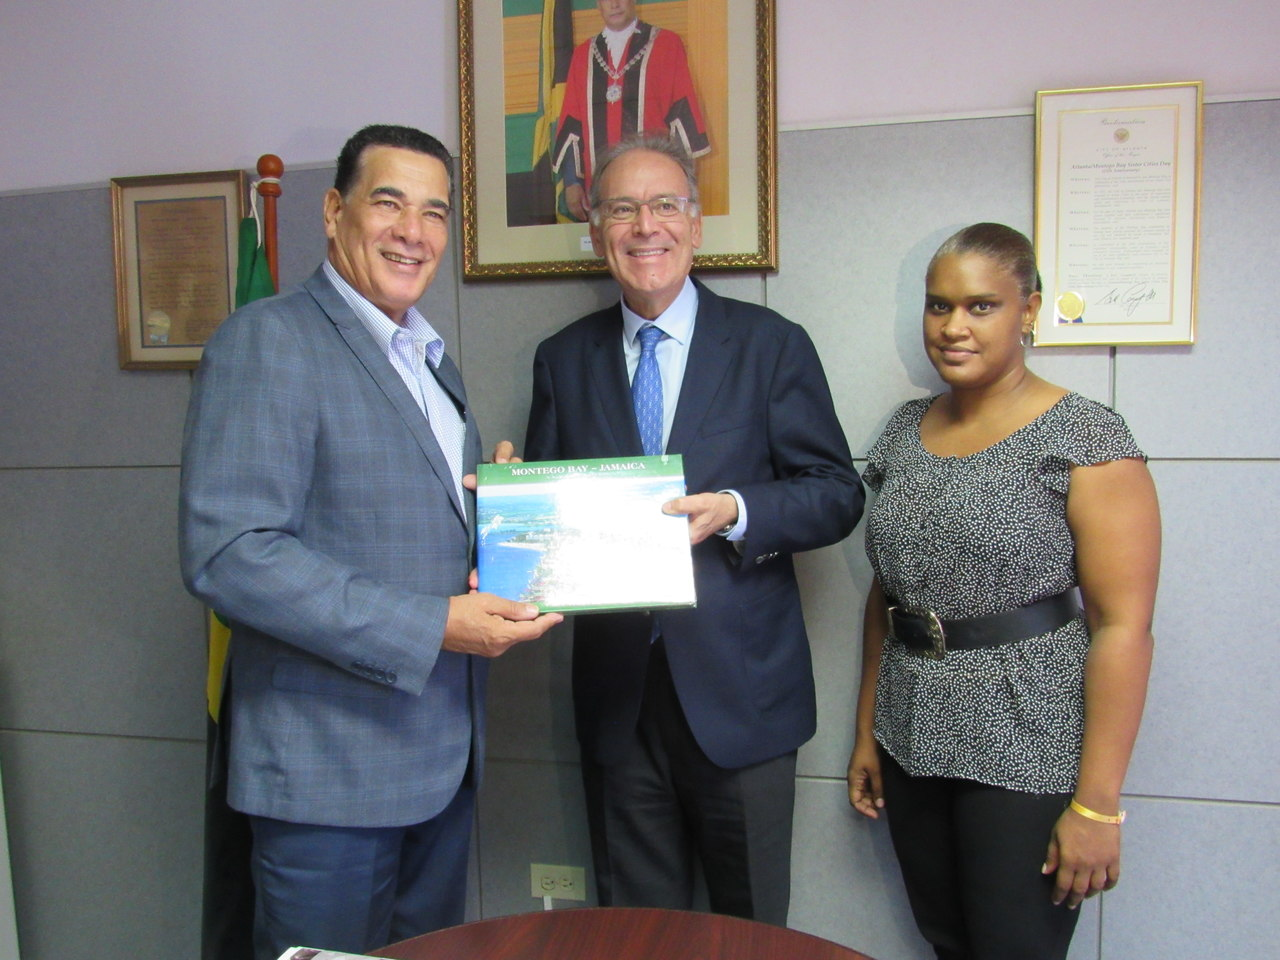 Montego Bay Mayor, Homer Davis (left), presents a book on the history of Montego Bay to Spanish Ambassador to Jamaica, Josep Bosch, after the ambassador paid him a courtesy call on Monday. Looking on is Project Manager with the Spanish Jamaica Foundation, Vanessa Meggoe.